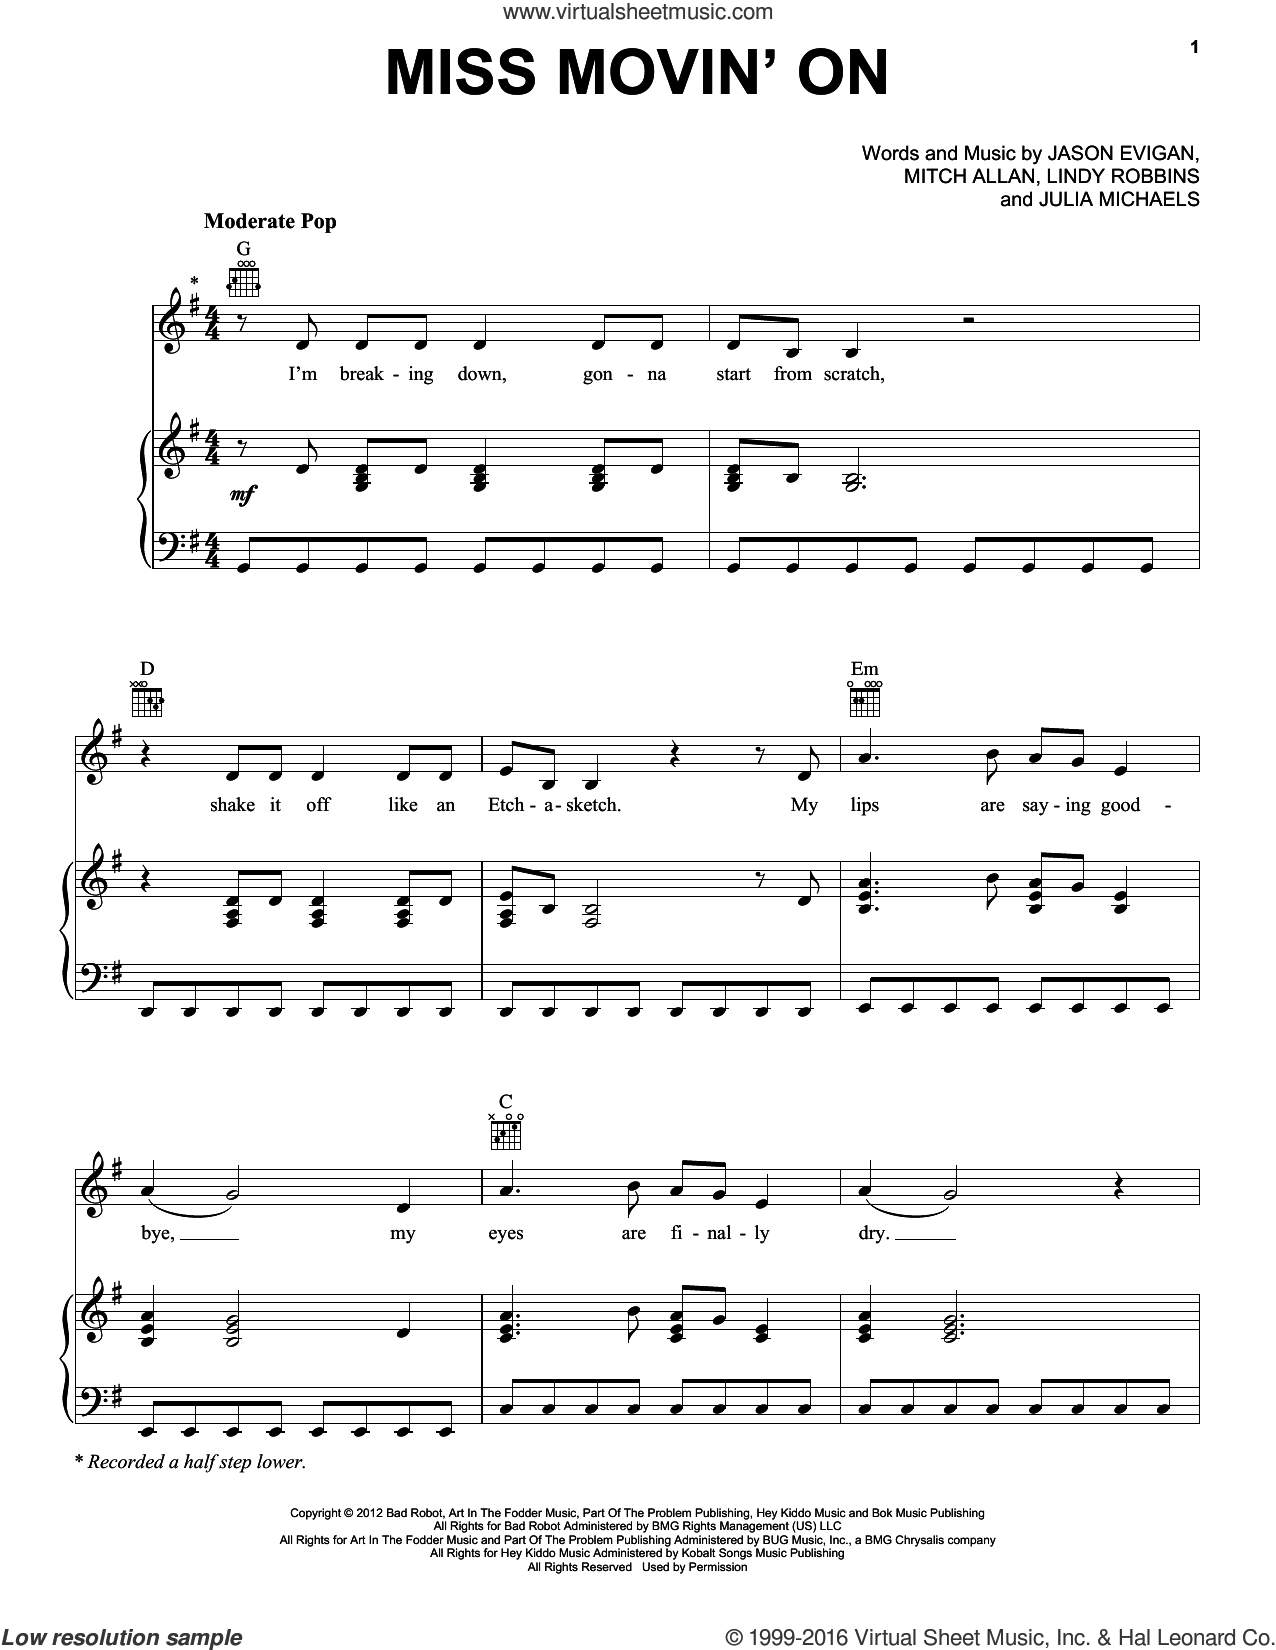 Miss Movin' On sheet music for voice, piano or guitar by Mitch Allan, Jason Evigan, Julia Michaels and Lindy Robbins. Score Image Preview.